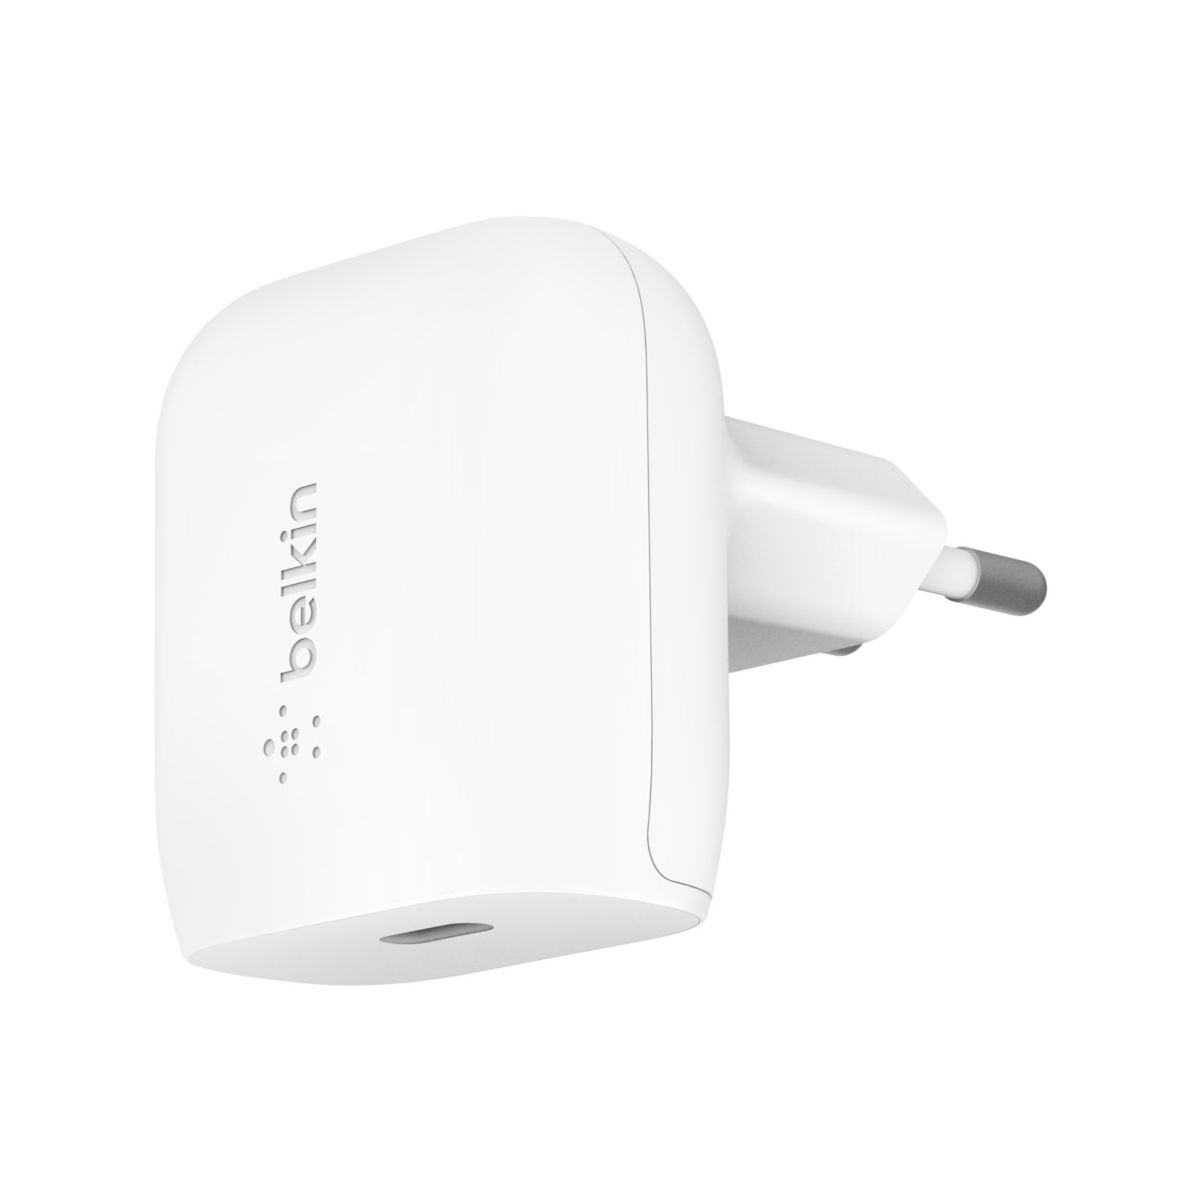 Belkin F7U096vfWHT Type-C (USB-C) Wall Charger 18W | FastCharge | 0-50% σε 30 λεπτά